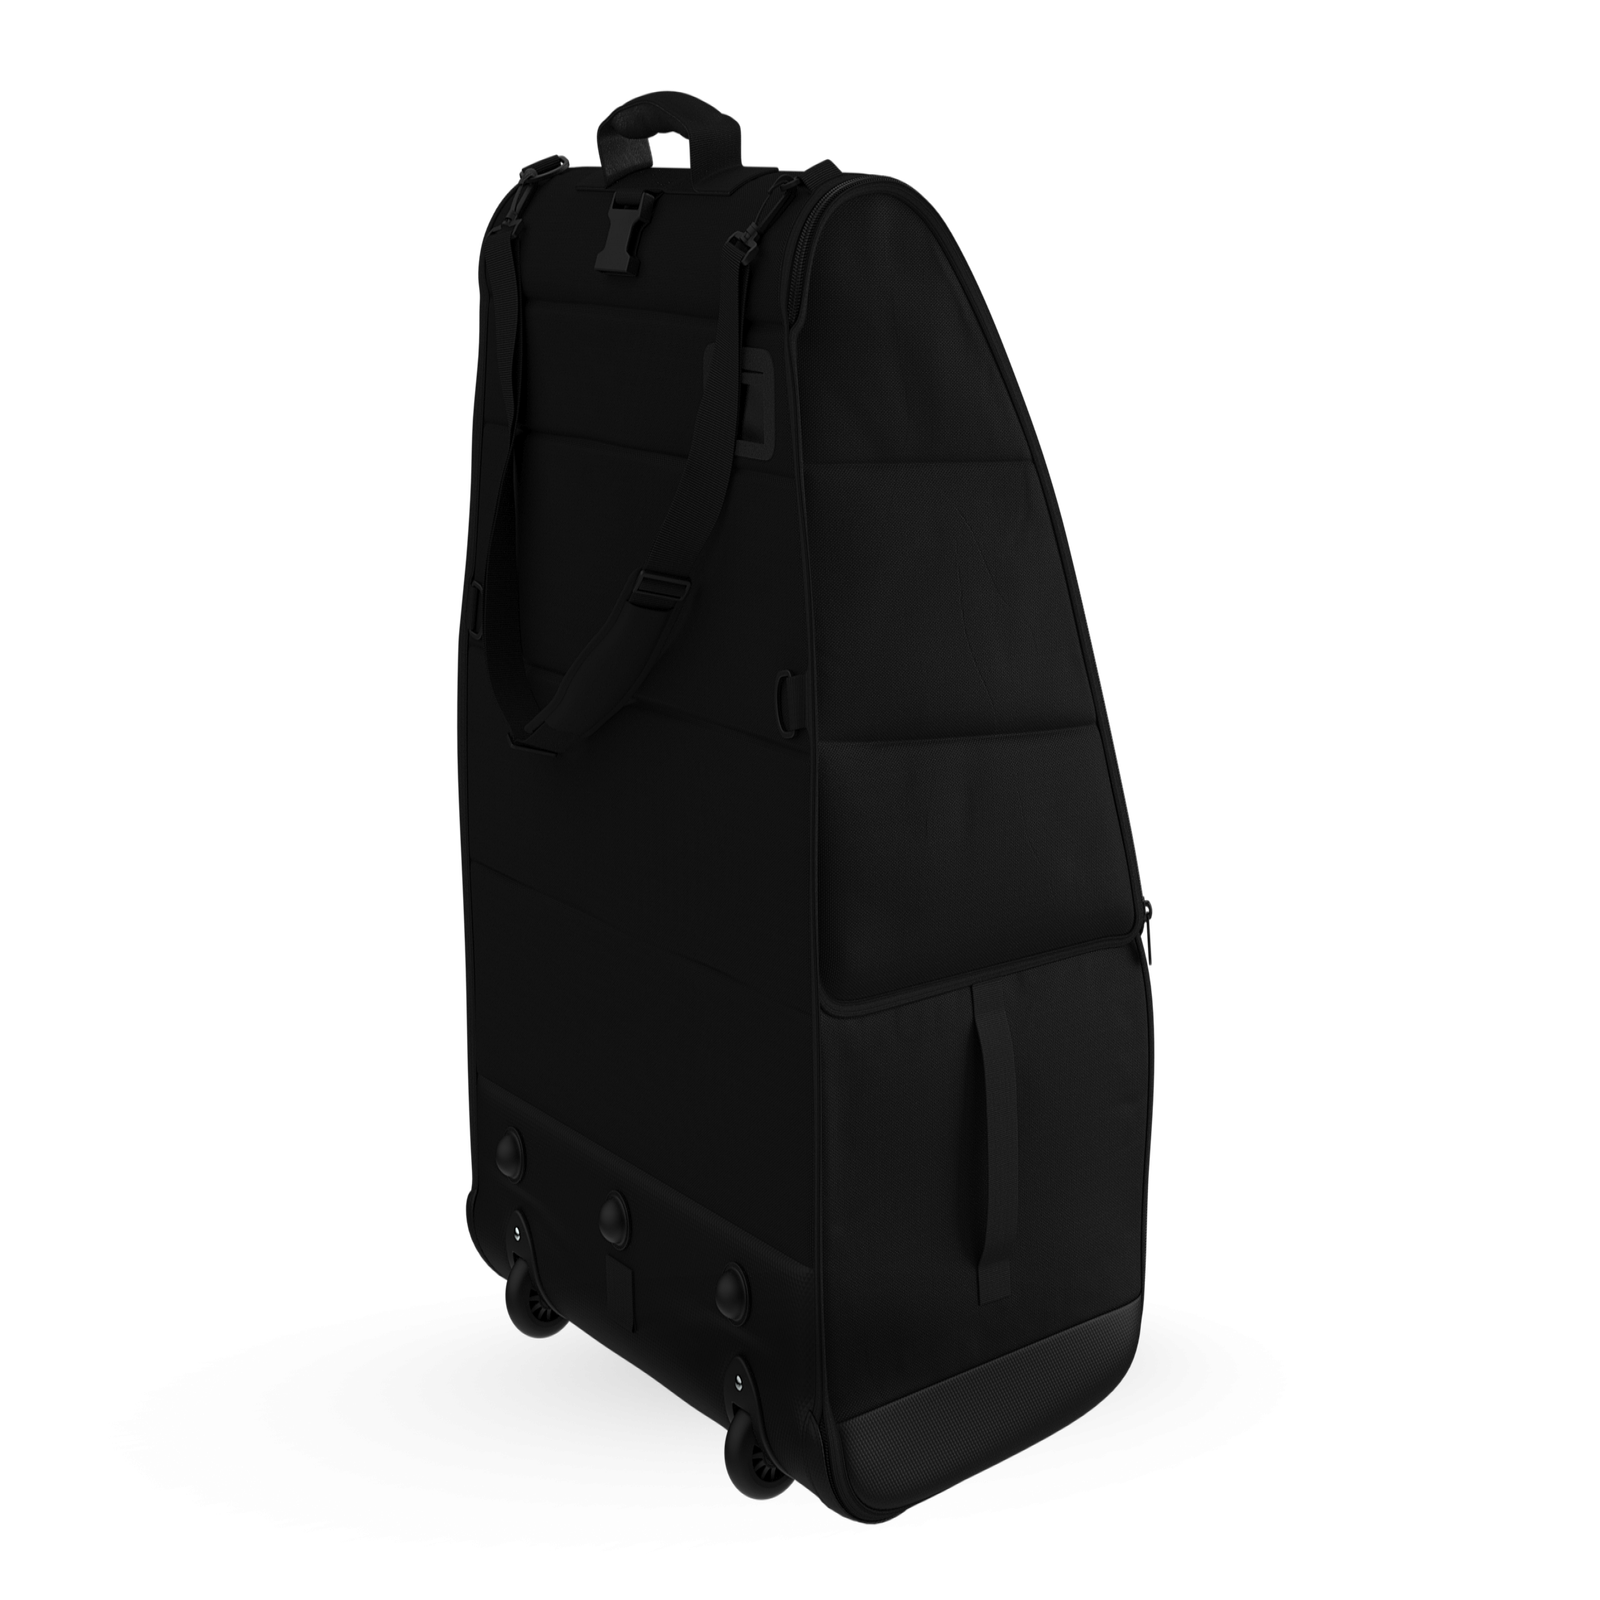 Bugaboo sangle d'épaule pour le sac de transport confort